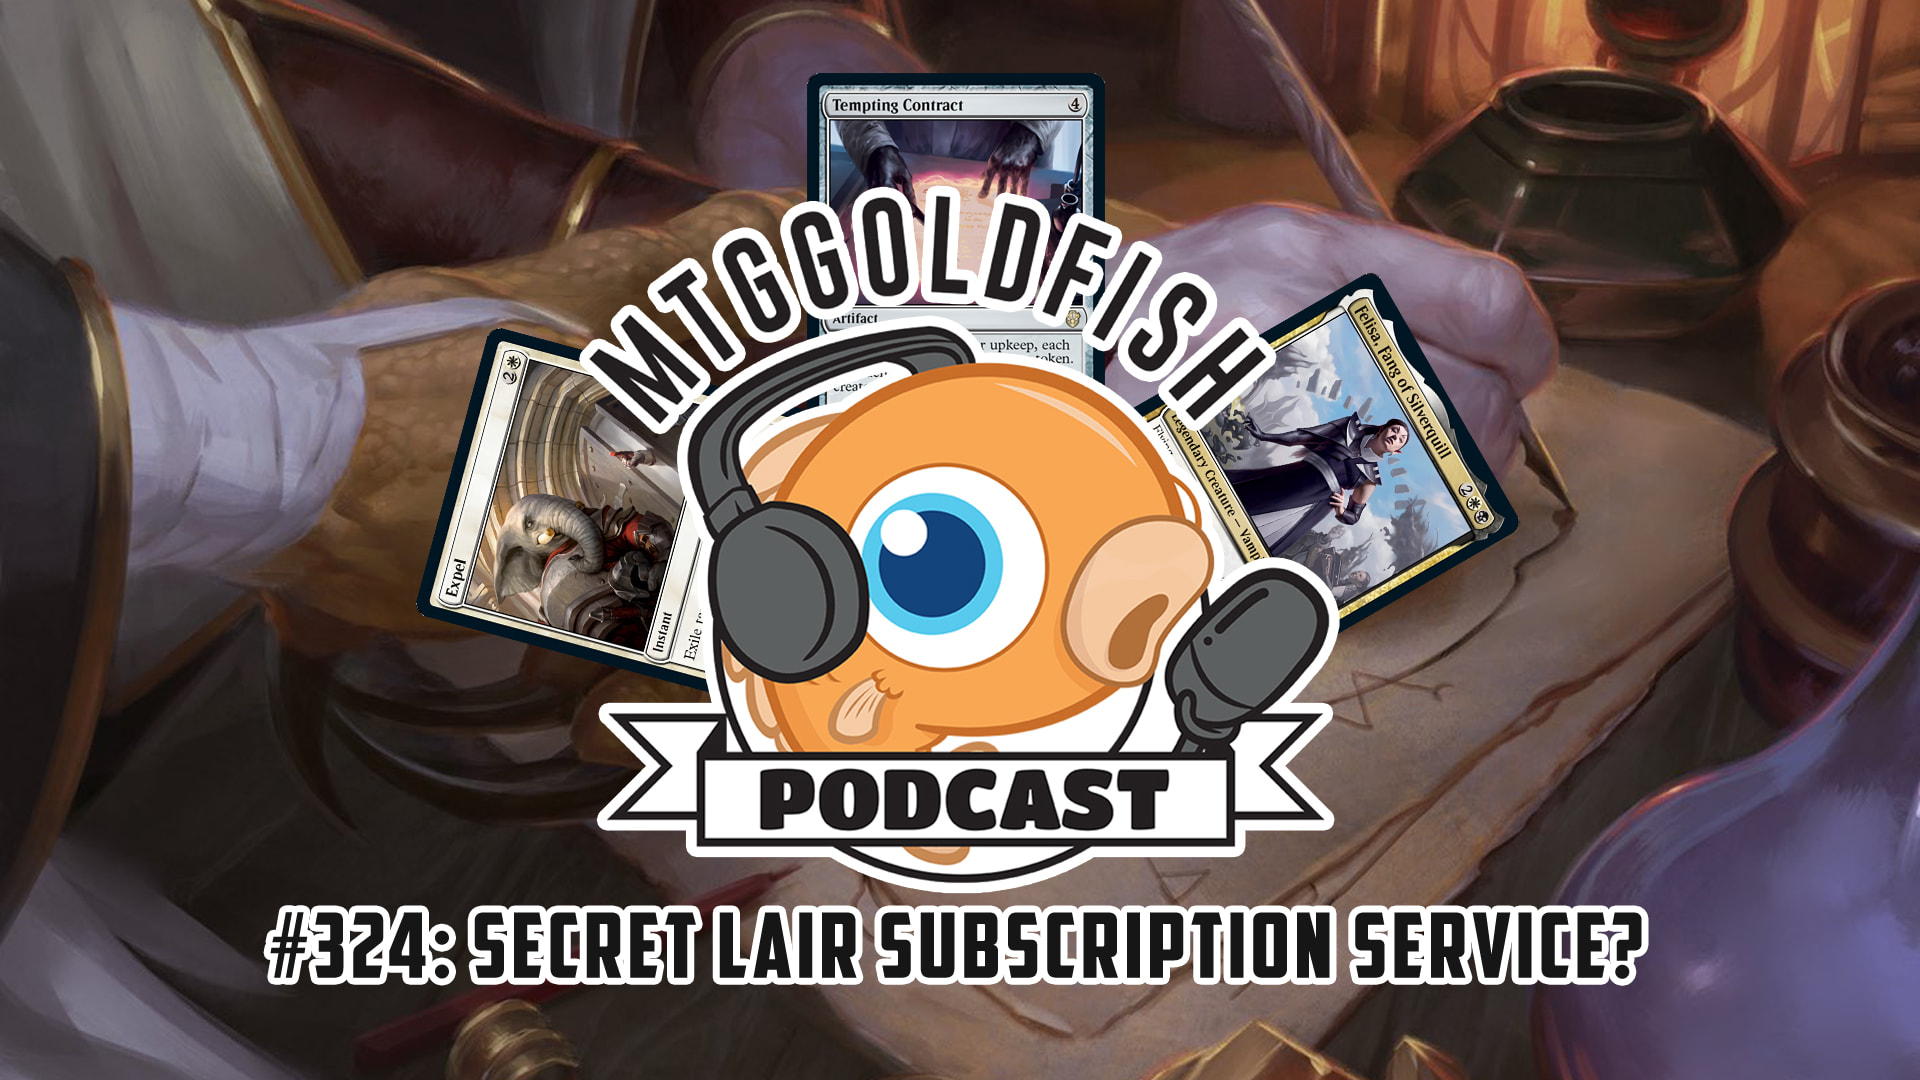 Image for Podcast 324: Secret Lair Subscription Service?